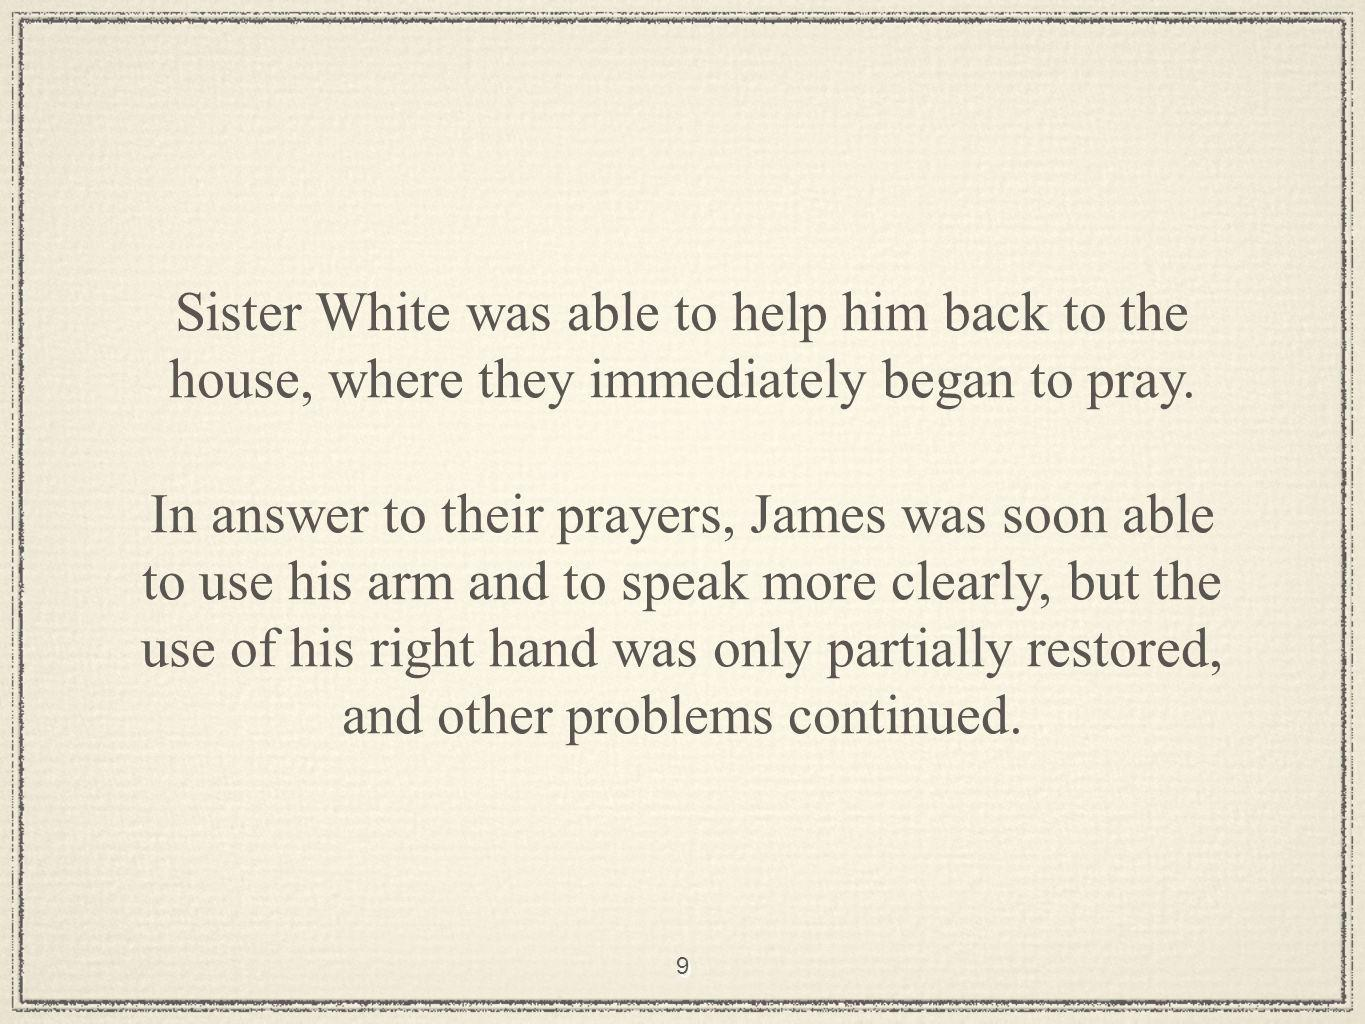 10 For the first five weeks, Sister White cared for her husband at home, then they went to a health institute in Dansville, New York, so he could receive water treatments.